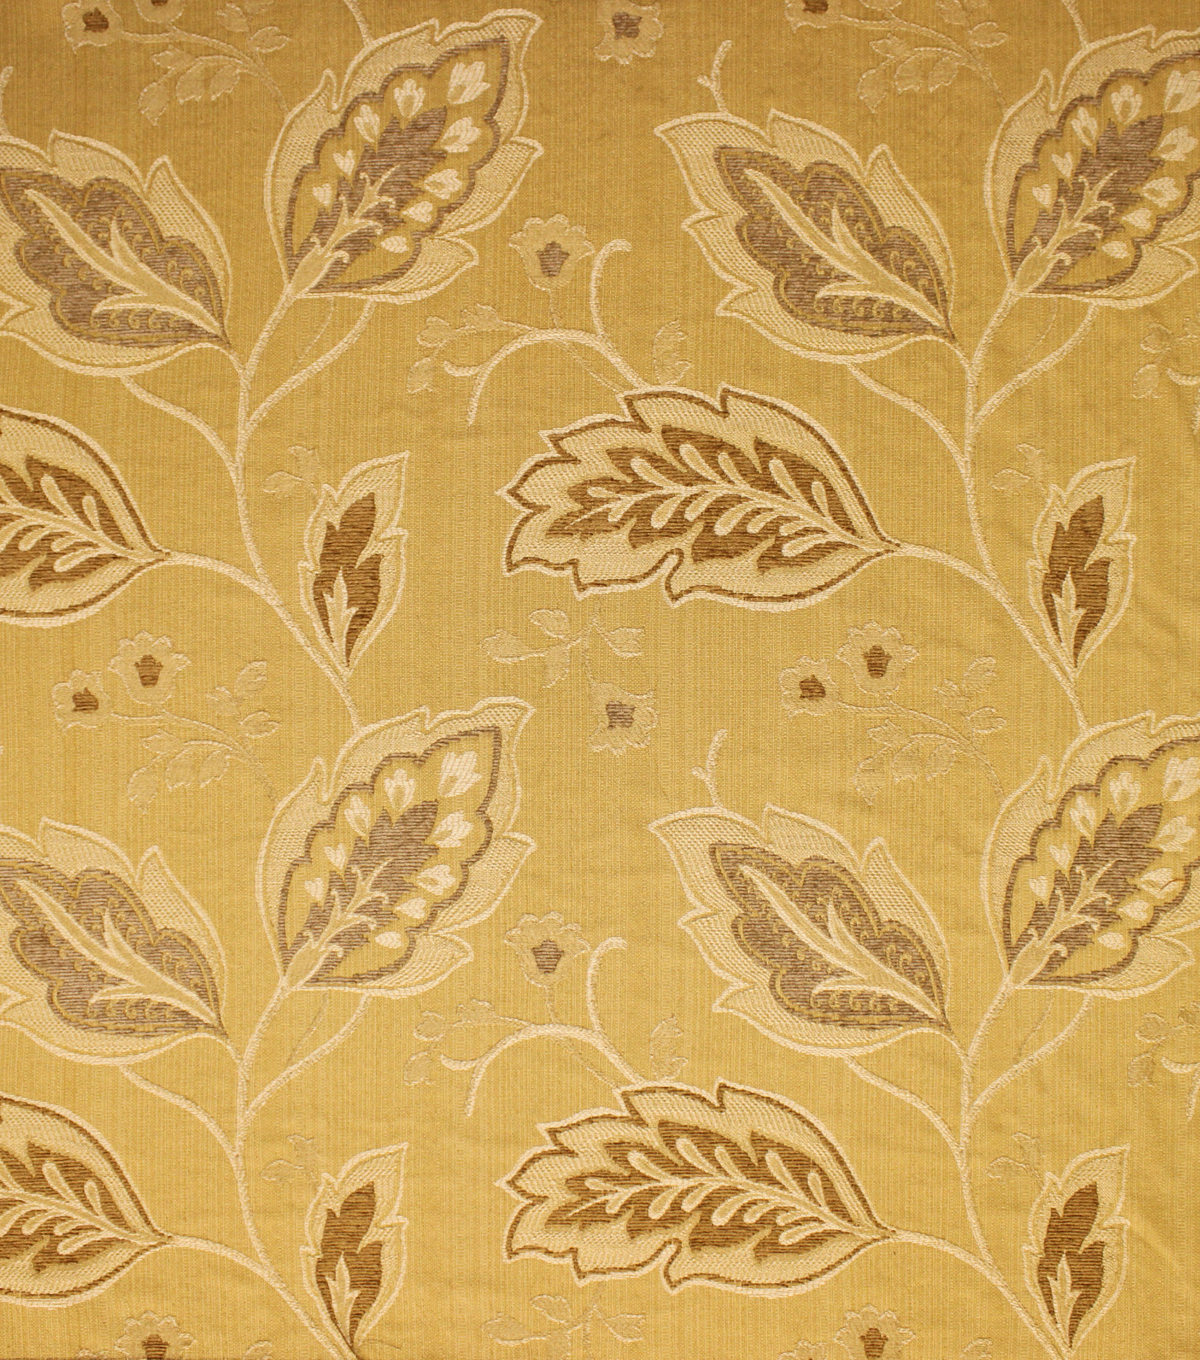 Home Decor 8\u0022x8\u0022 Fabric Swatch-Upholstery  Barrow M7480-5826 Sandstone